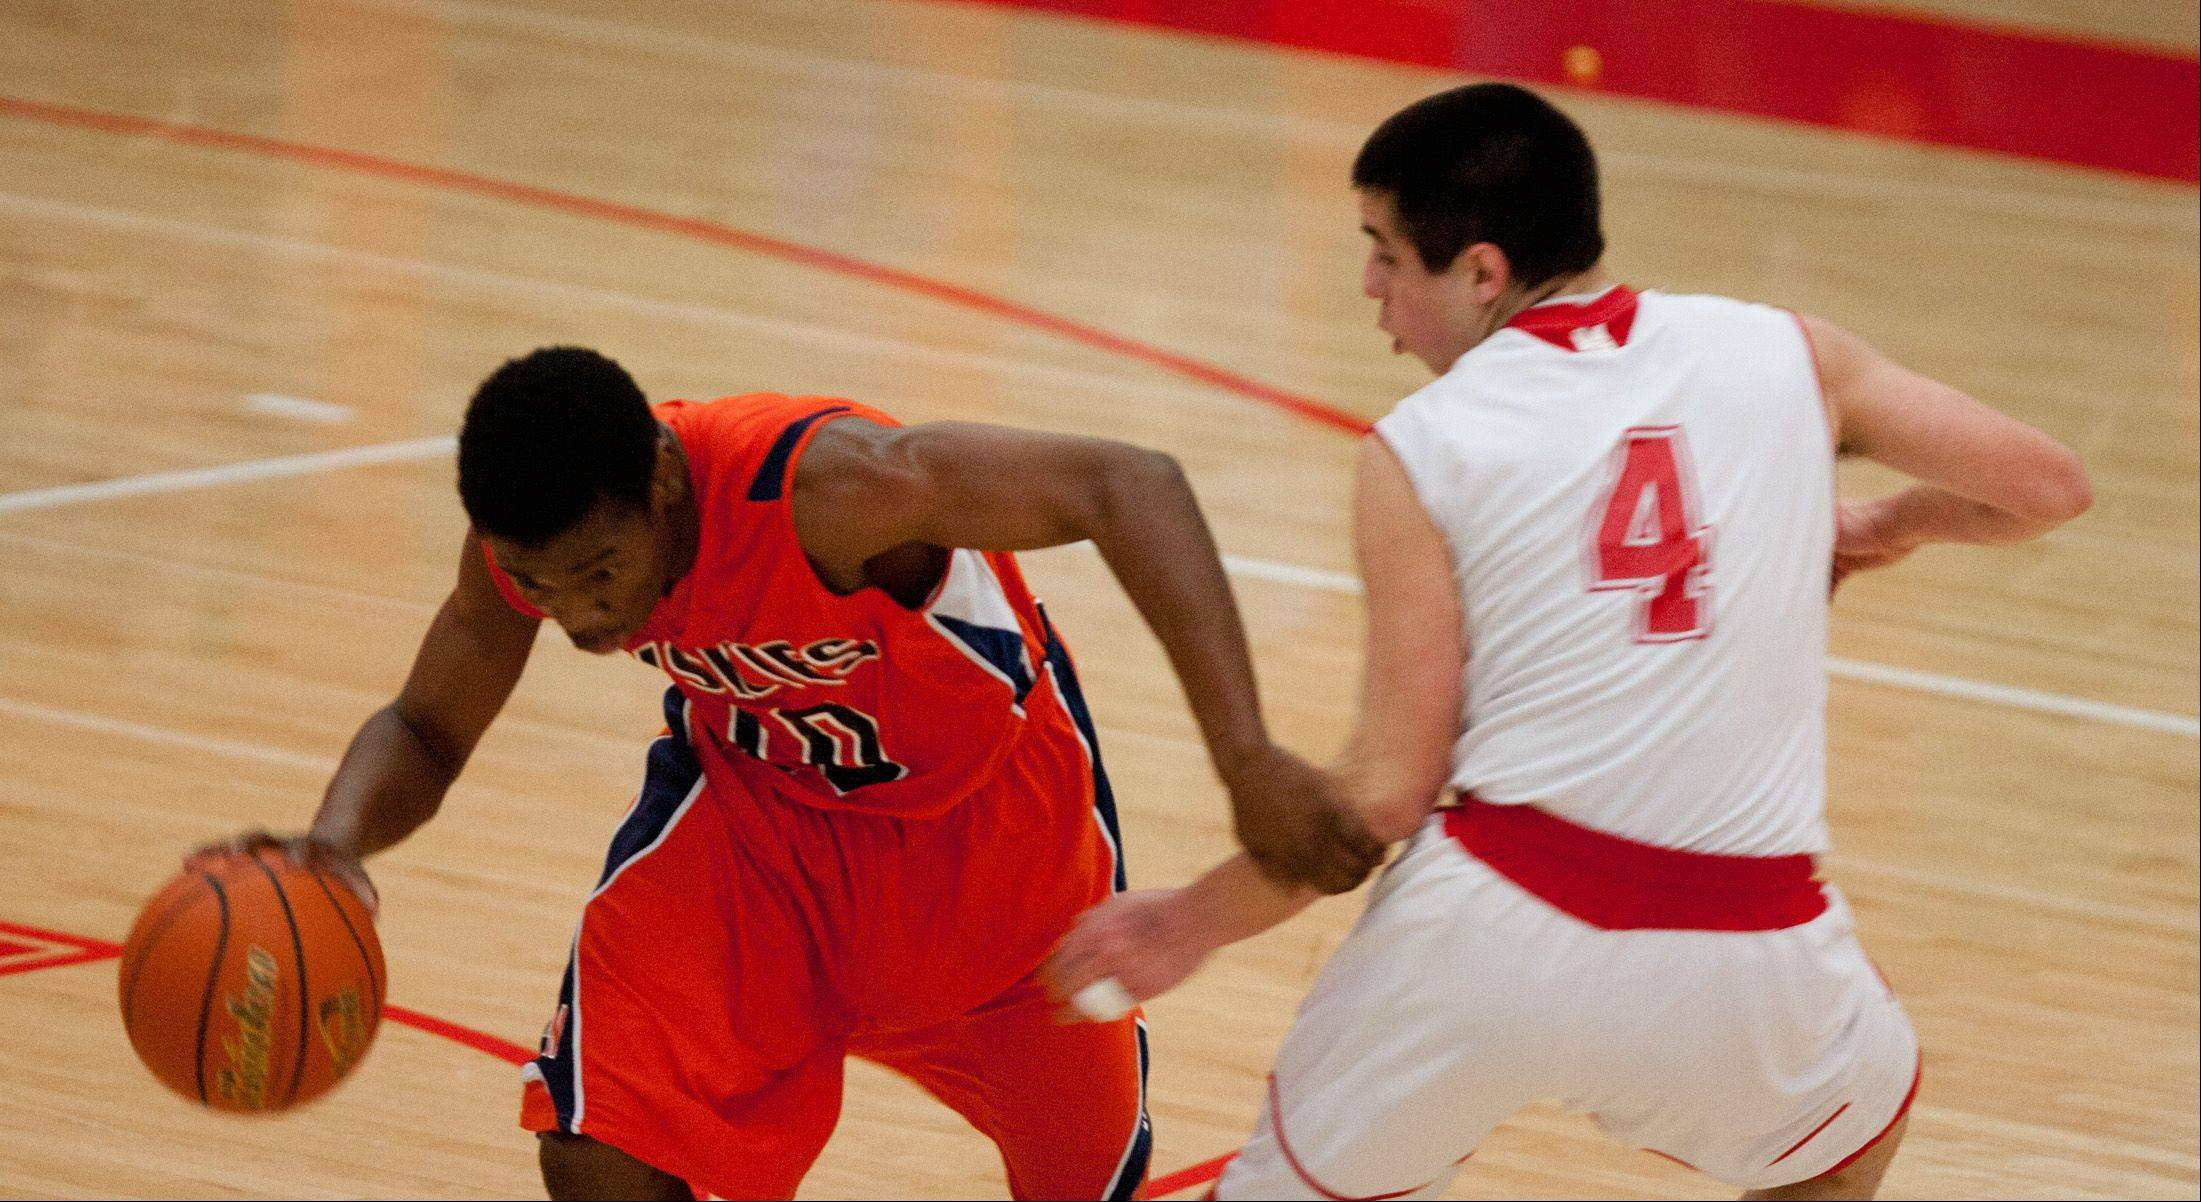 Daniel White/dwhite@dailyherald.com ¬ Naperville North's Jelani McClain Jr., left, runs the offense as Naperville Central's Ryan Anthony (4), defends, during boys basketball action at Naperville Central High School.